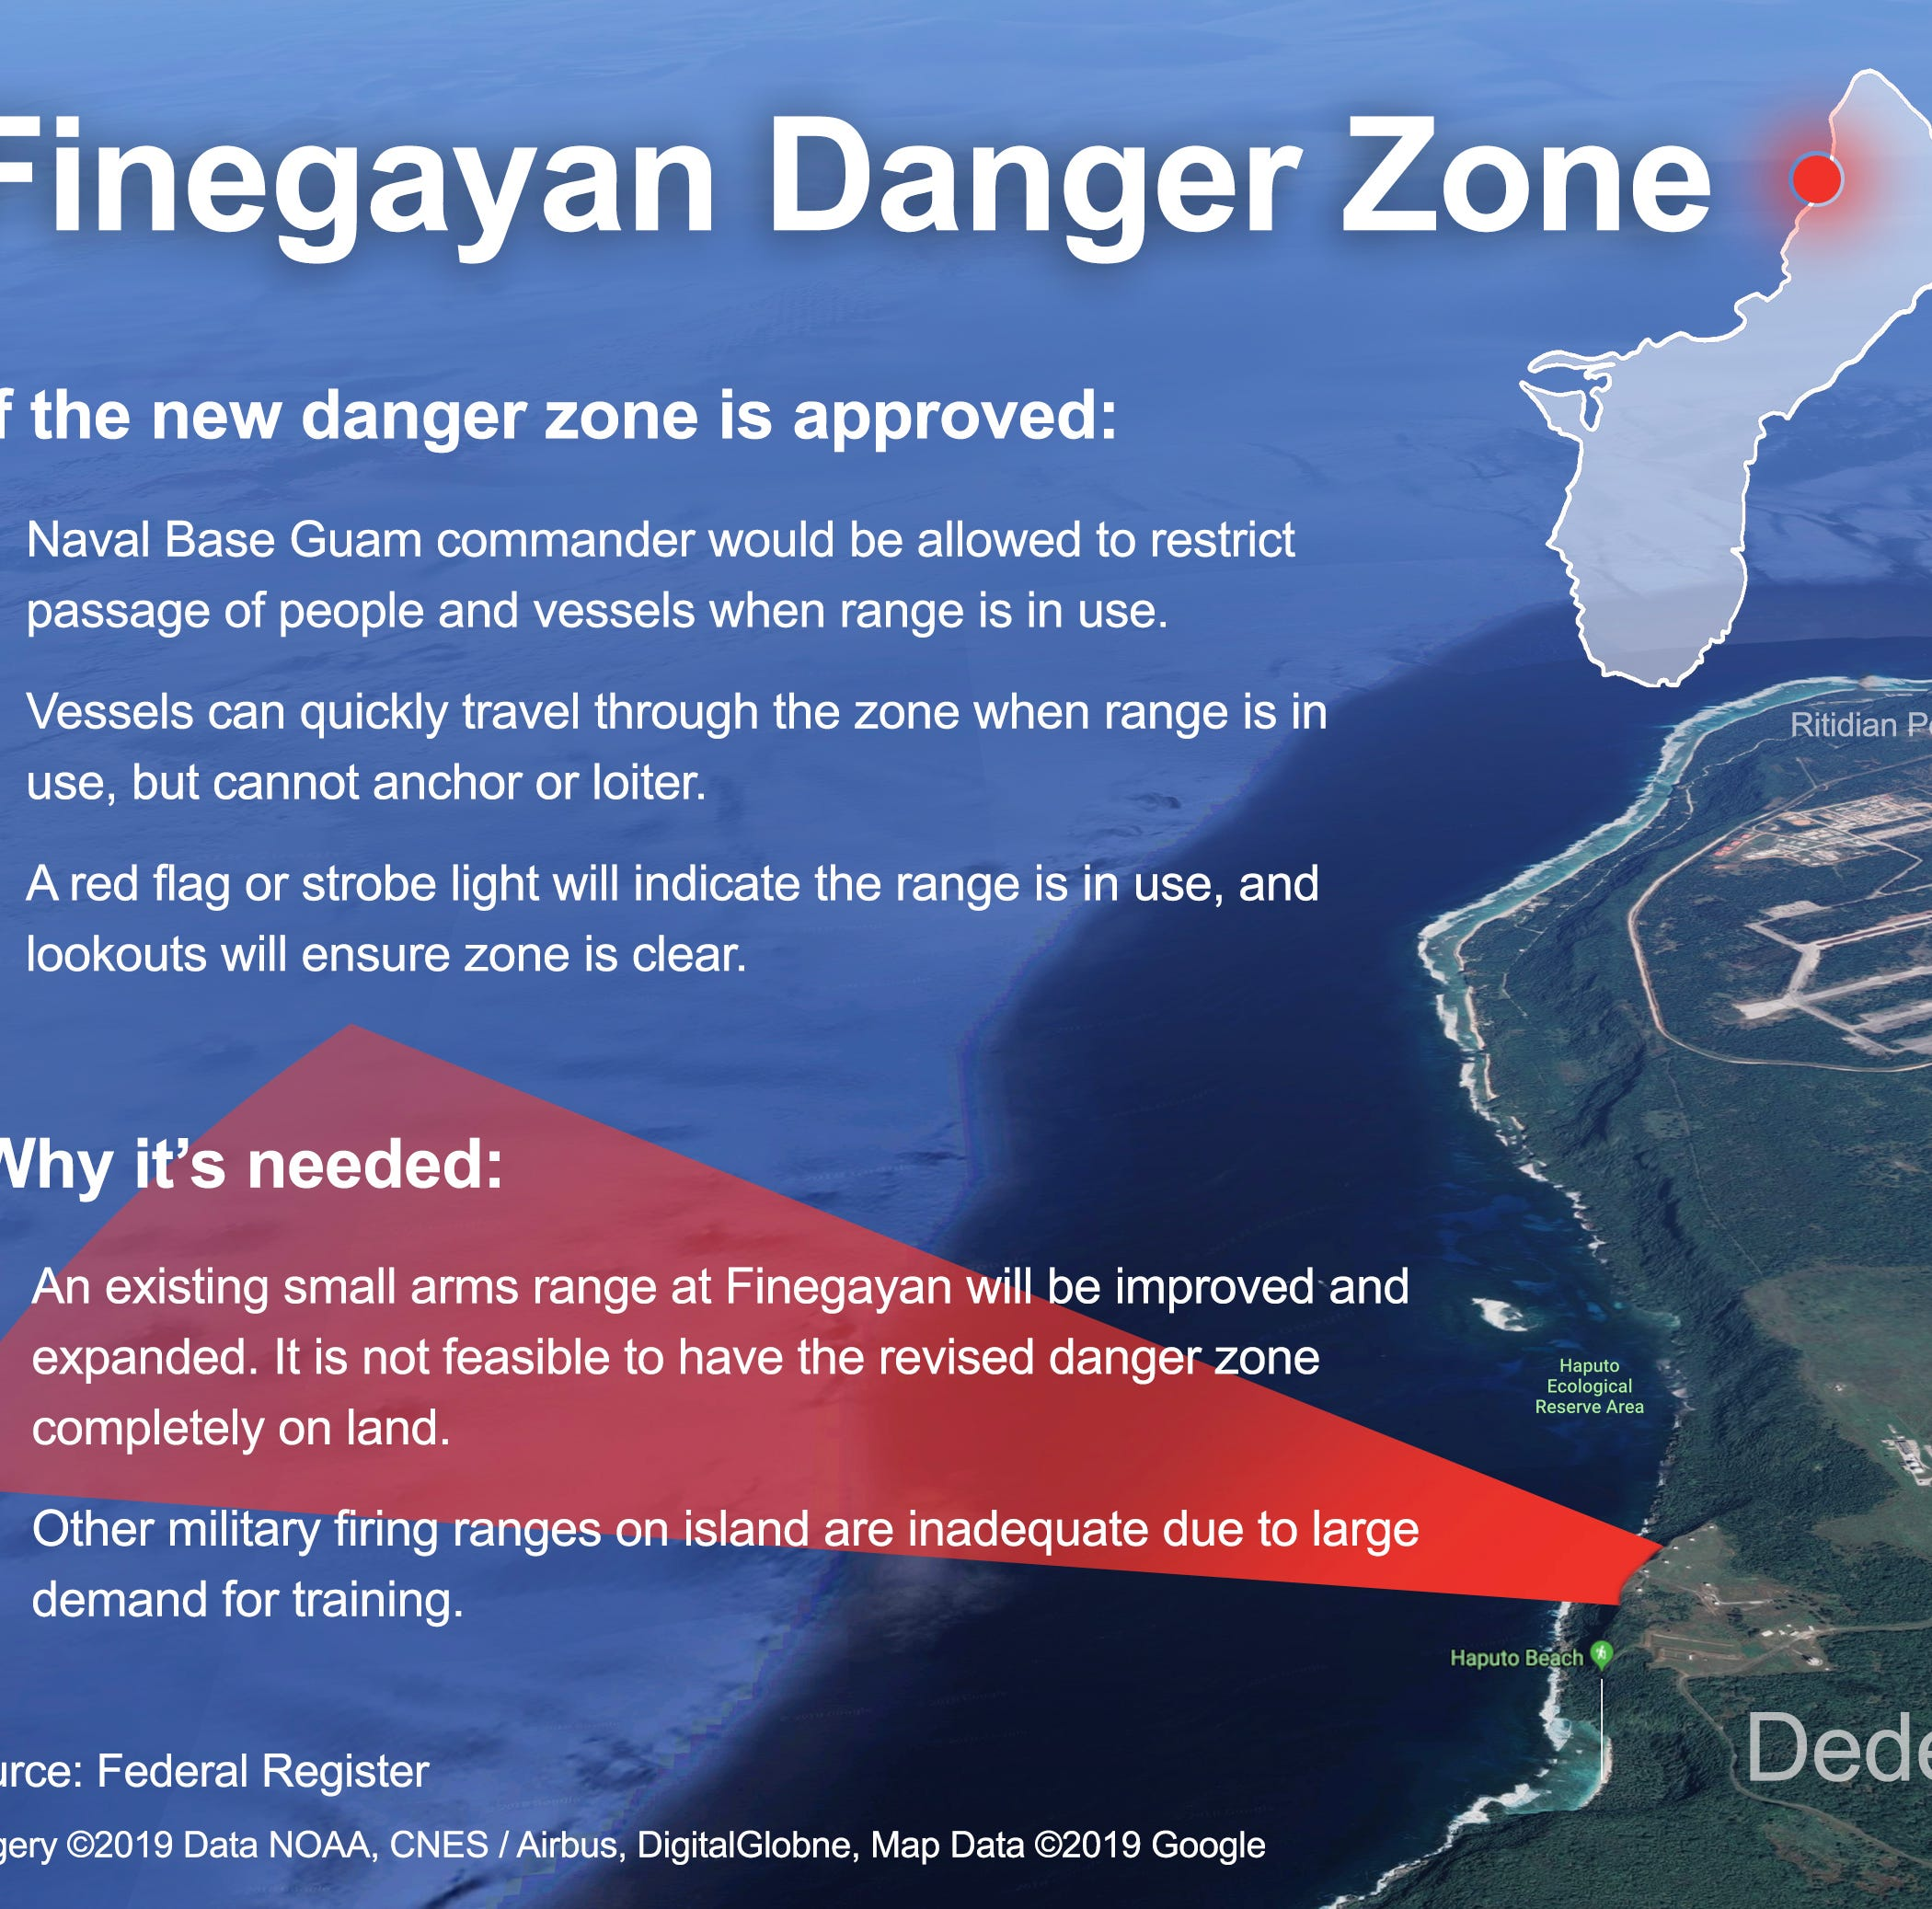 Army Corps of Engineers have reviewed Finegayan danger zone comments, await Navy input